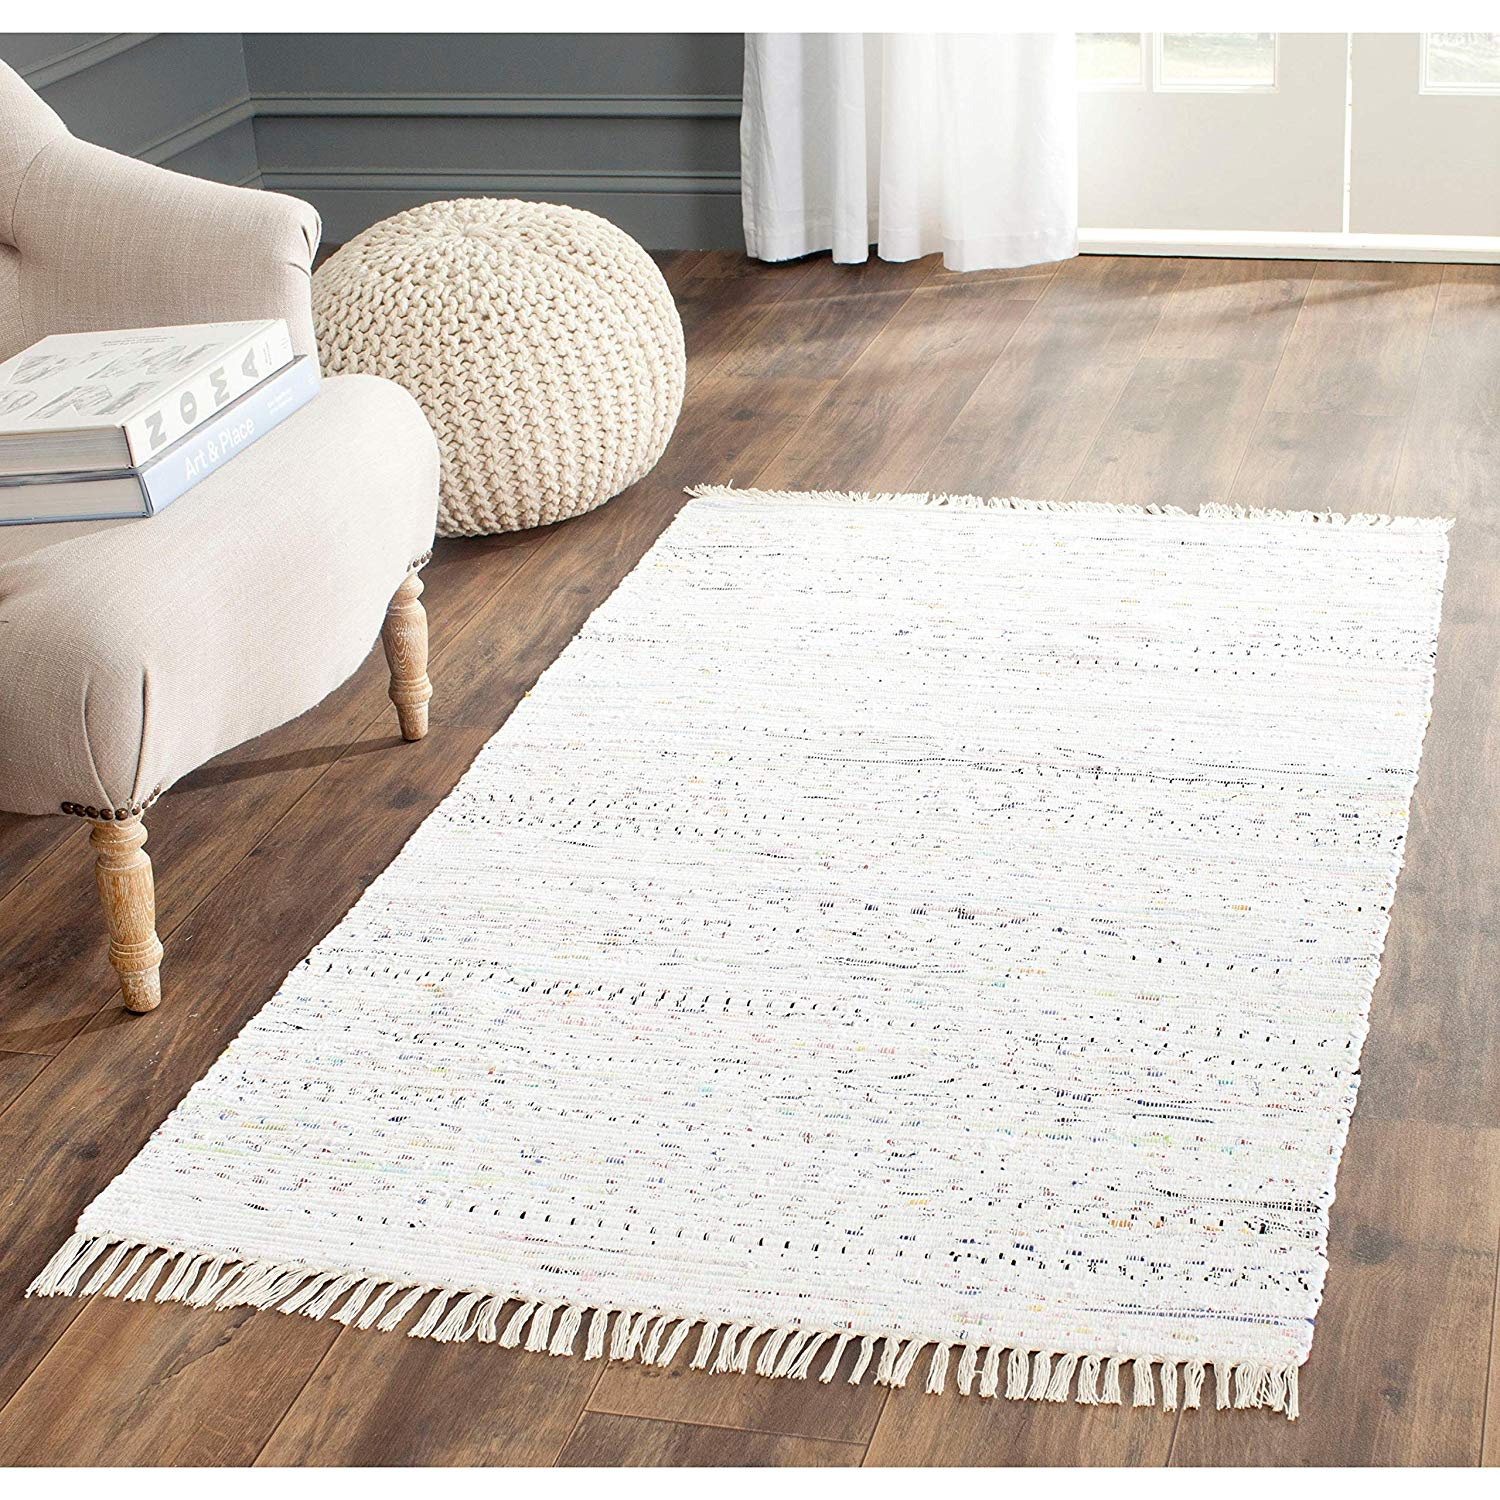 White Rag Rug 2x3 Ft Striped Carpet Handmade Rectangle Shape Bathroom Entryway Kitchen Bohemian Mattress Eclectic Indoor Accent Rug Flatweave